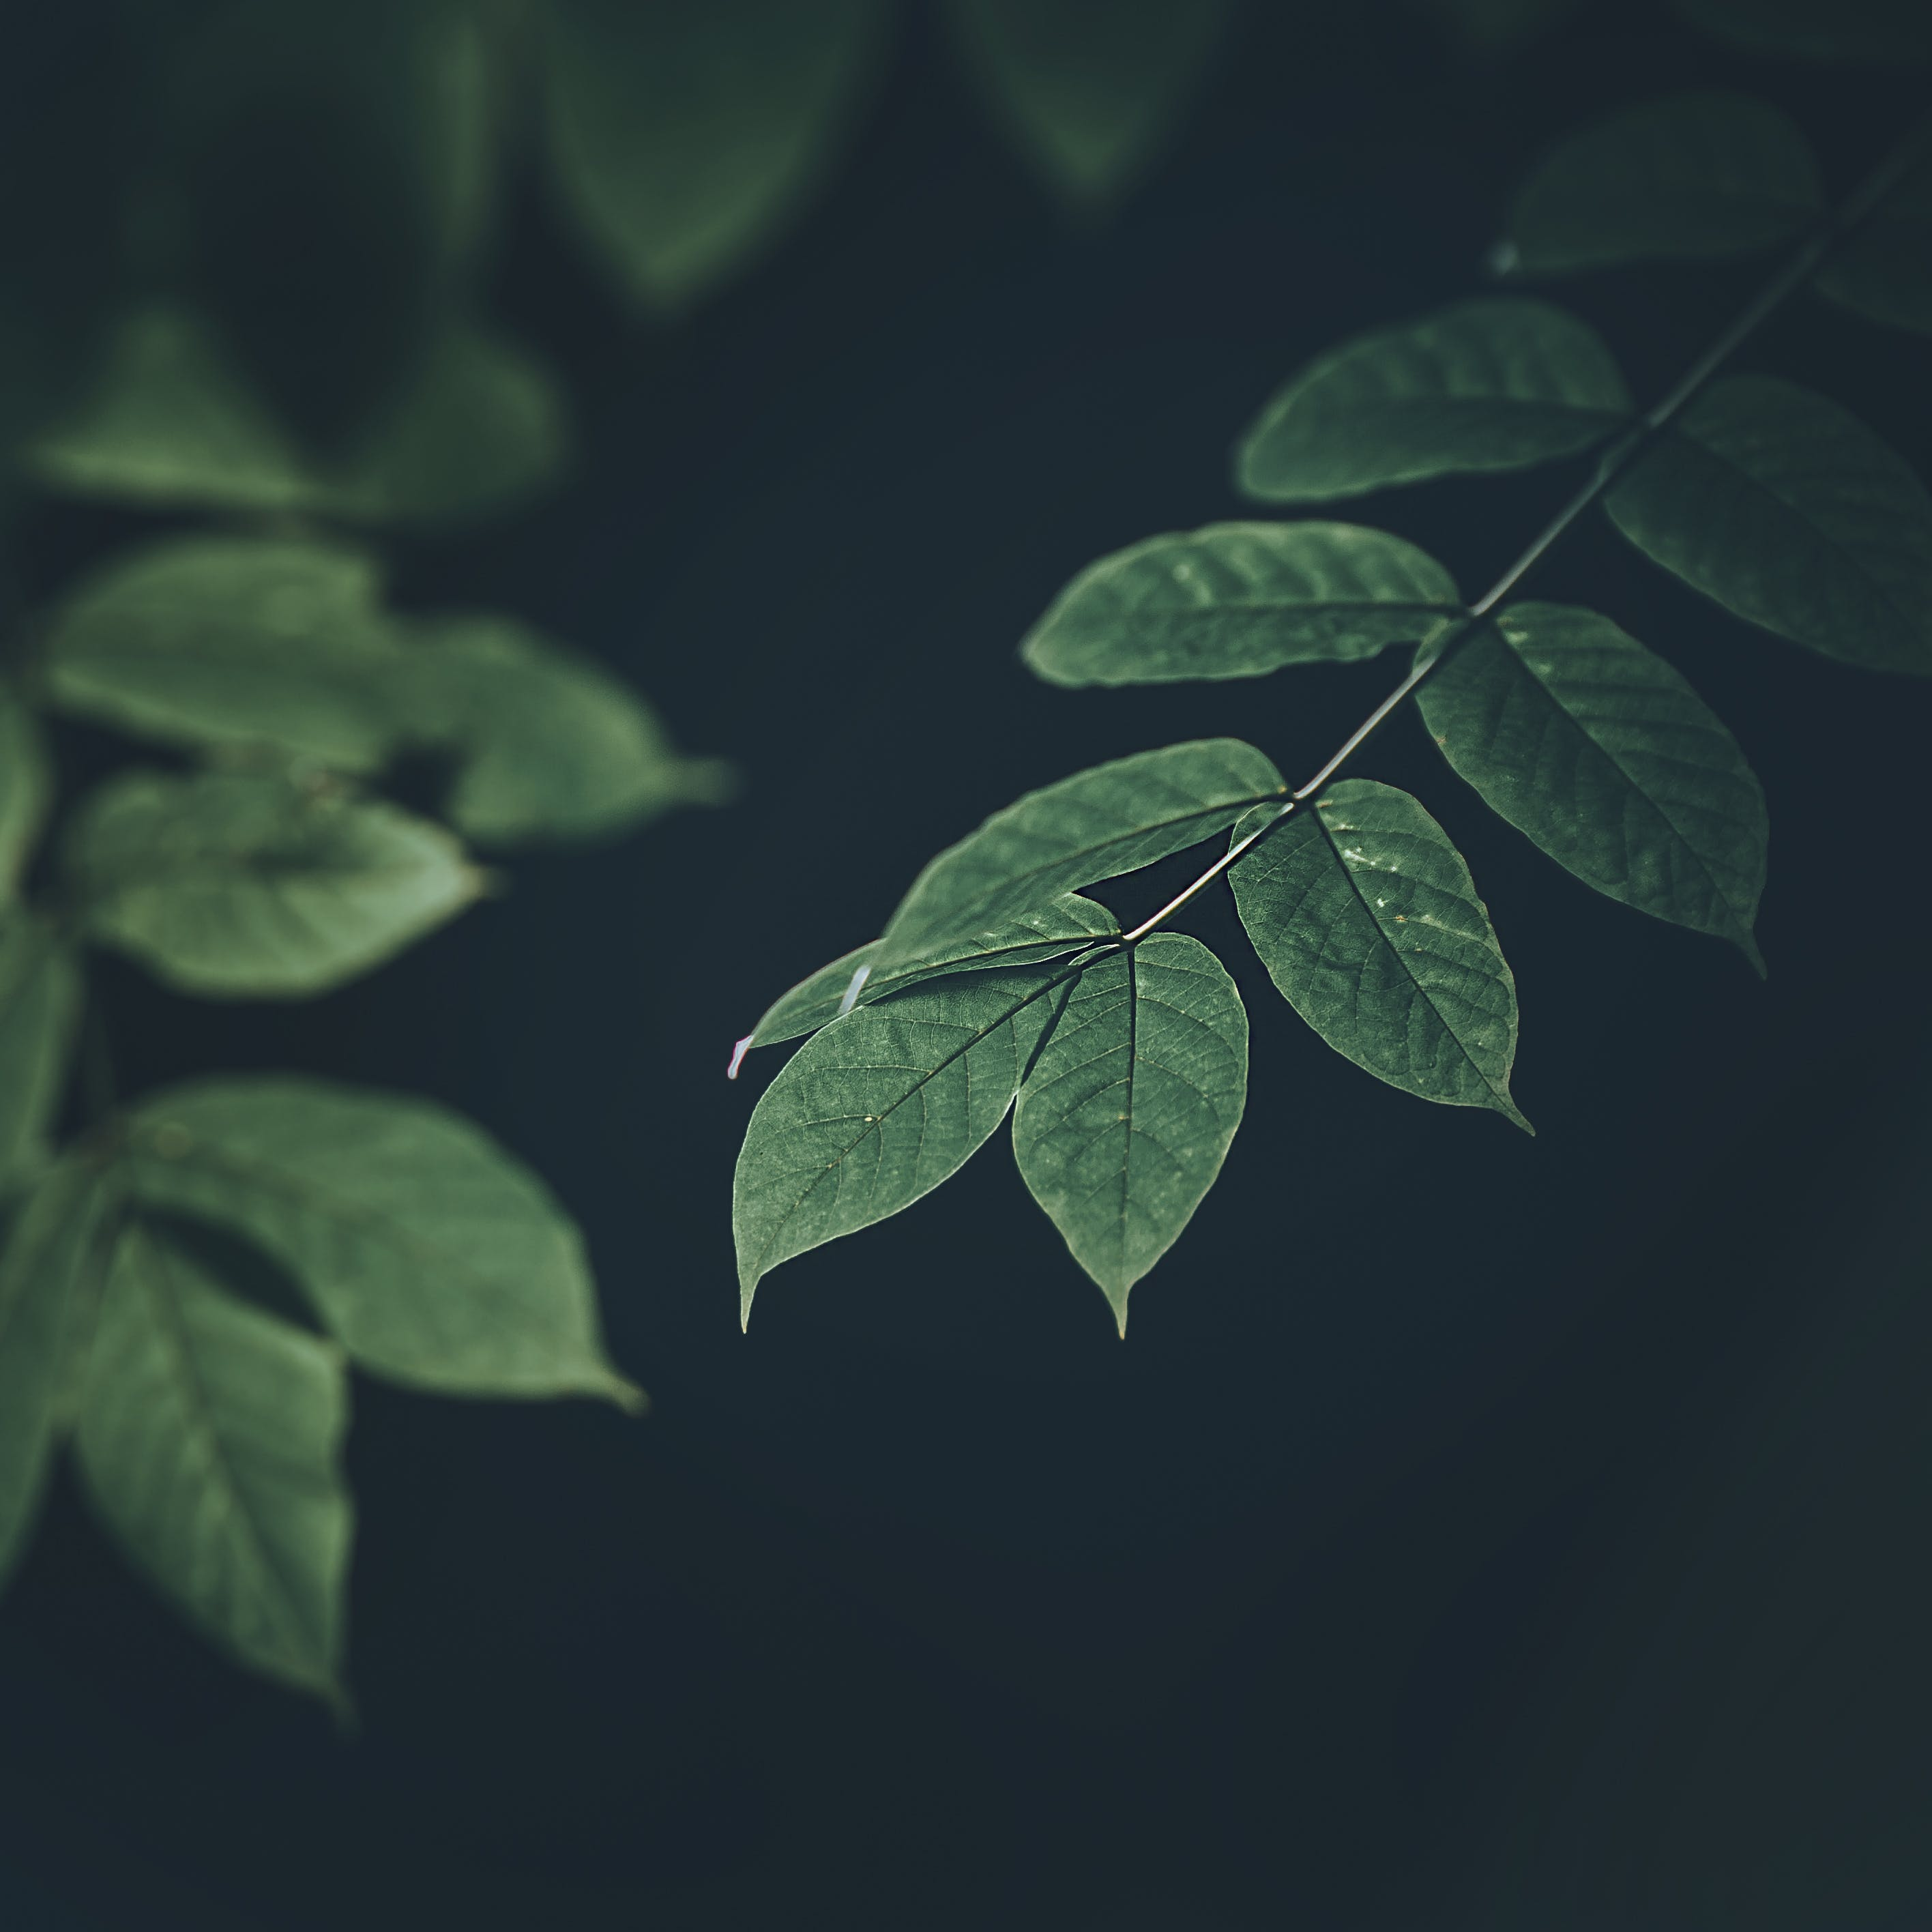 Green Leaf Plants